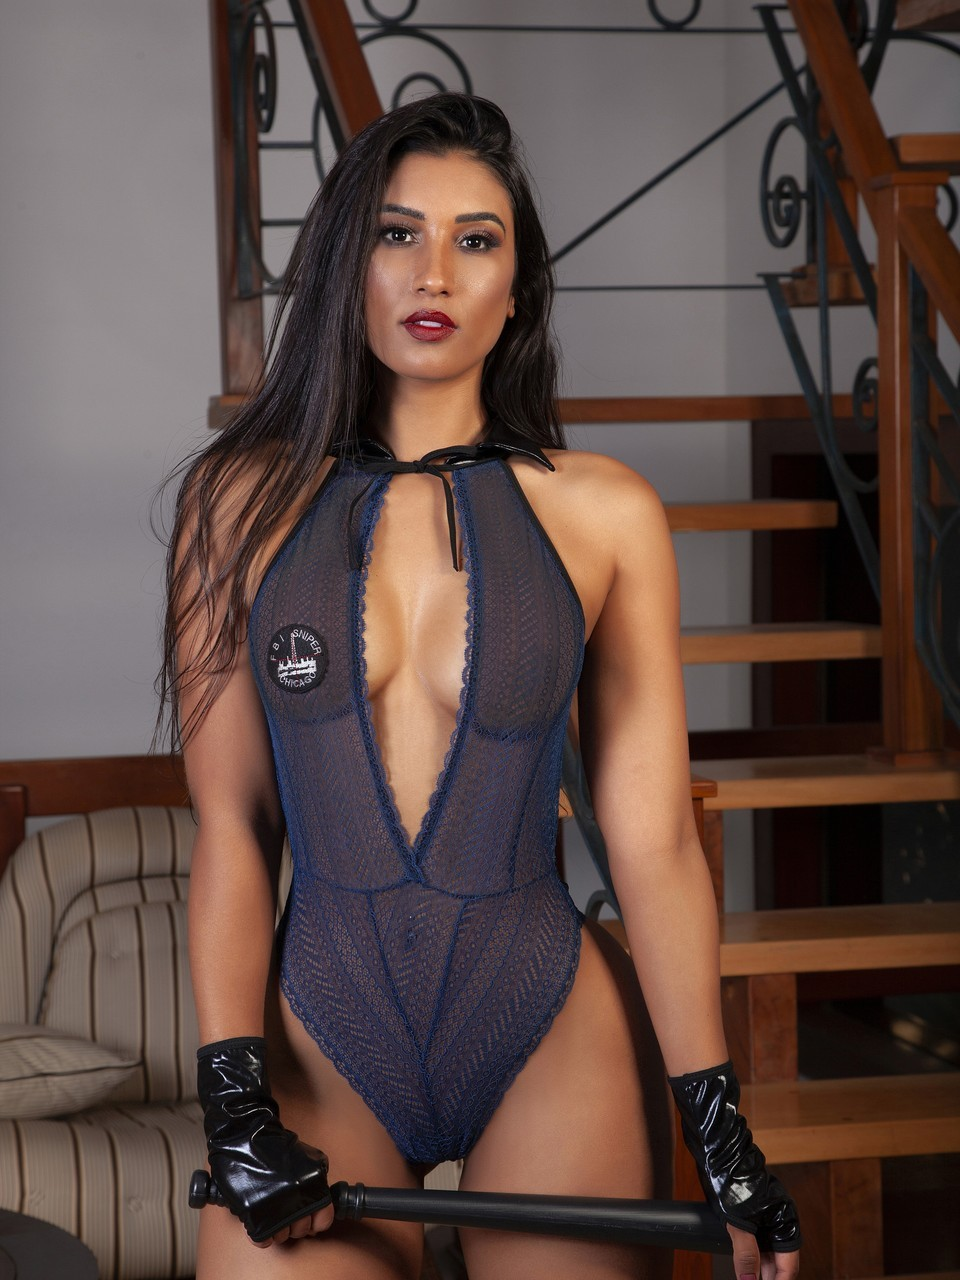 Tenue Détective sexy Mme Smith - 2176